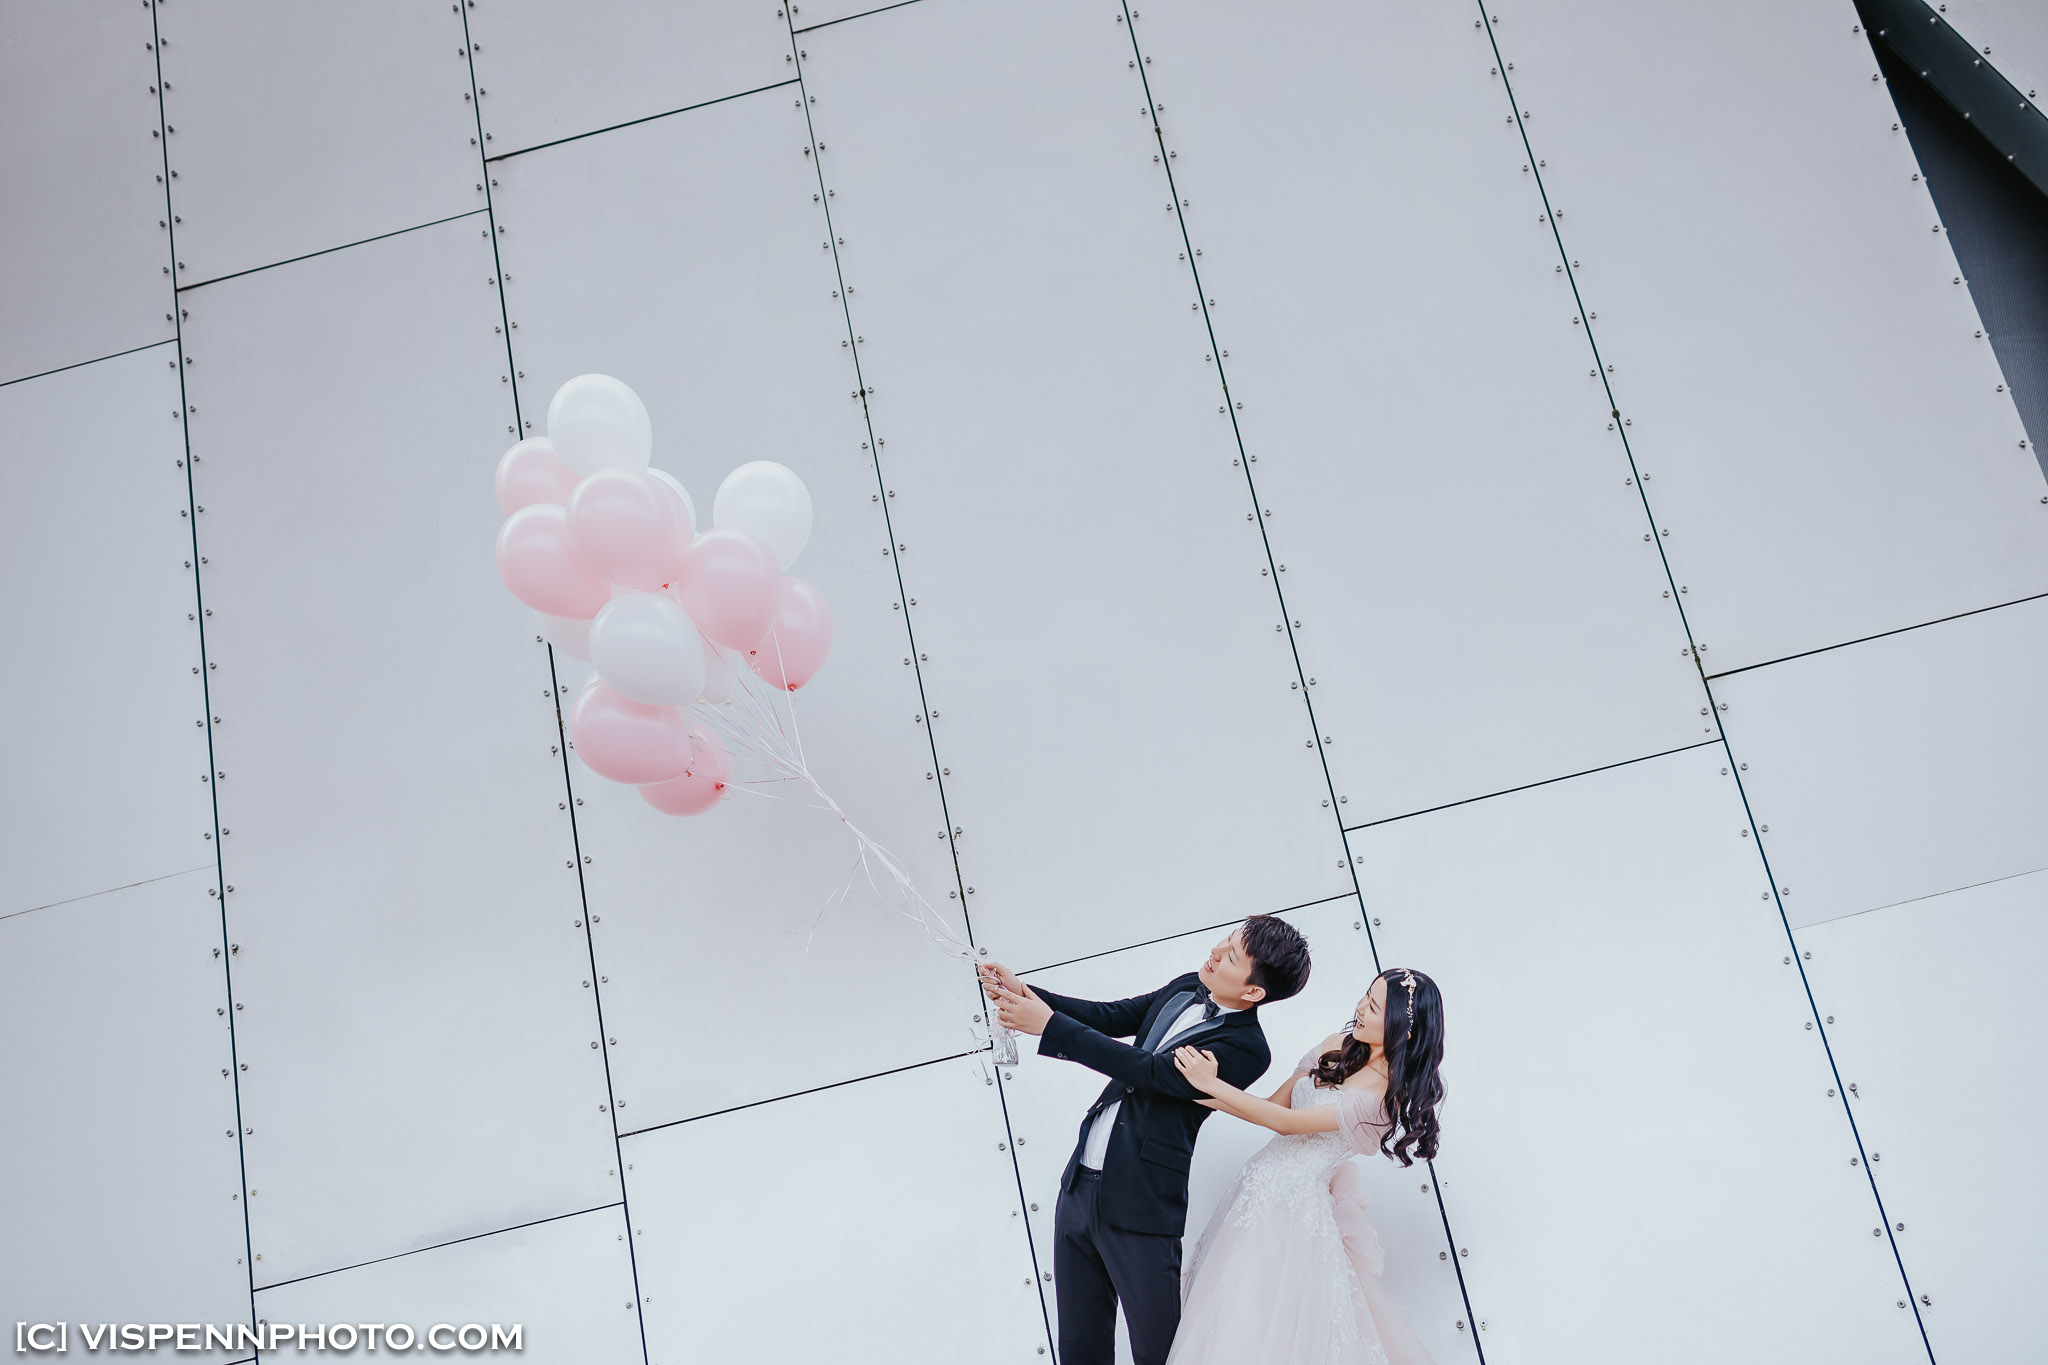 PRE WEDDING Photography Melbourne ZHPENN H5D5 0095